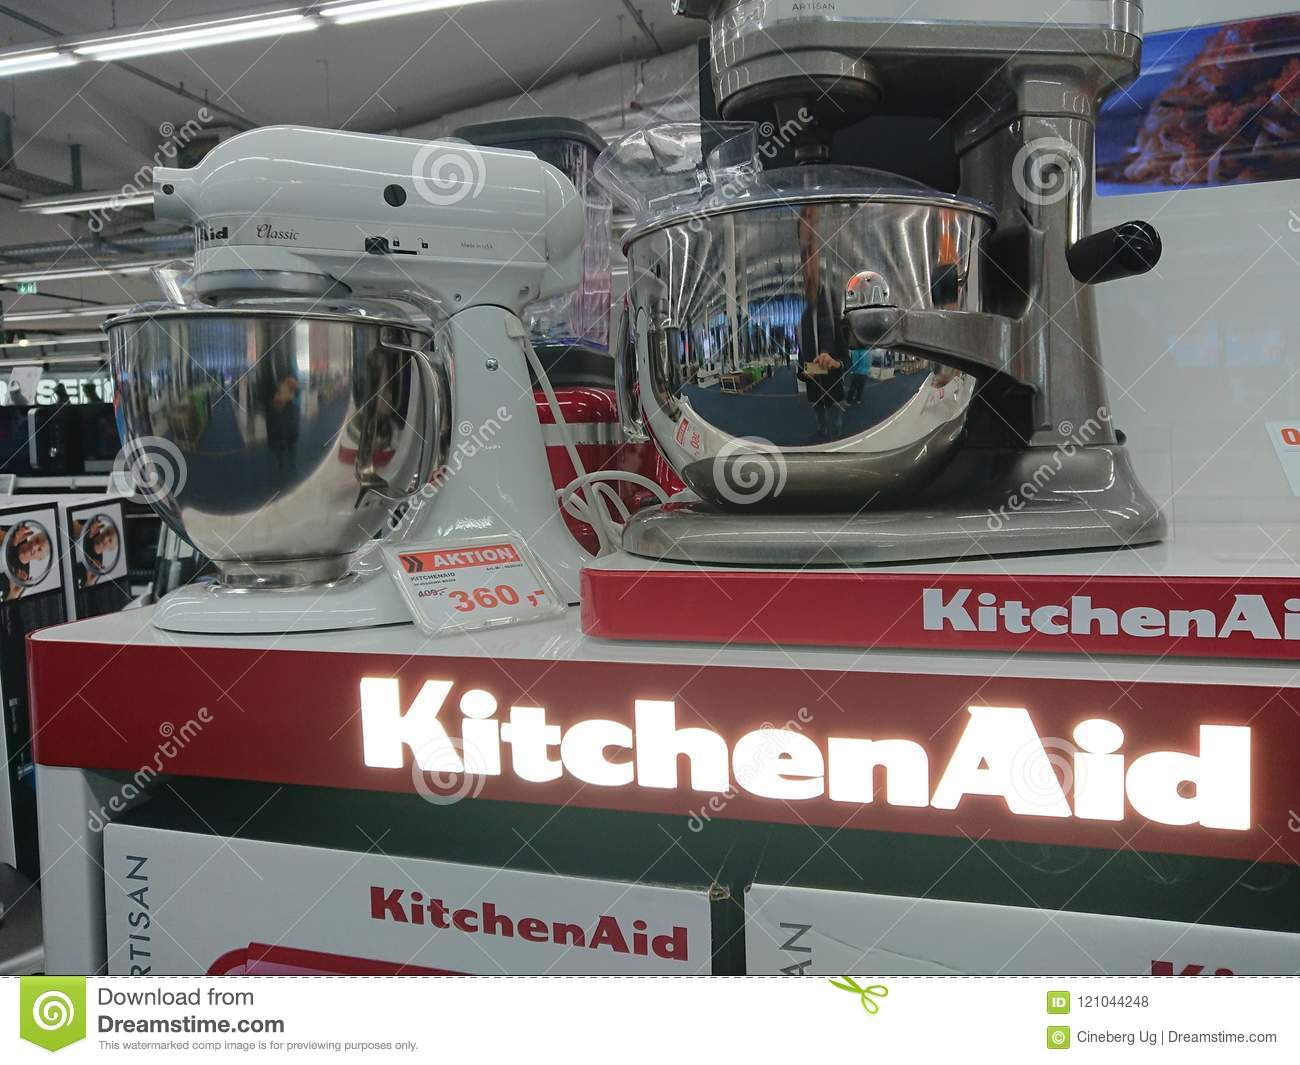 De mixers van de KitchenAidtribune